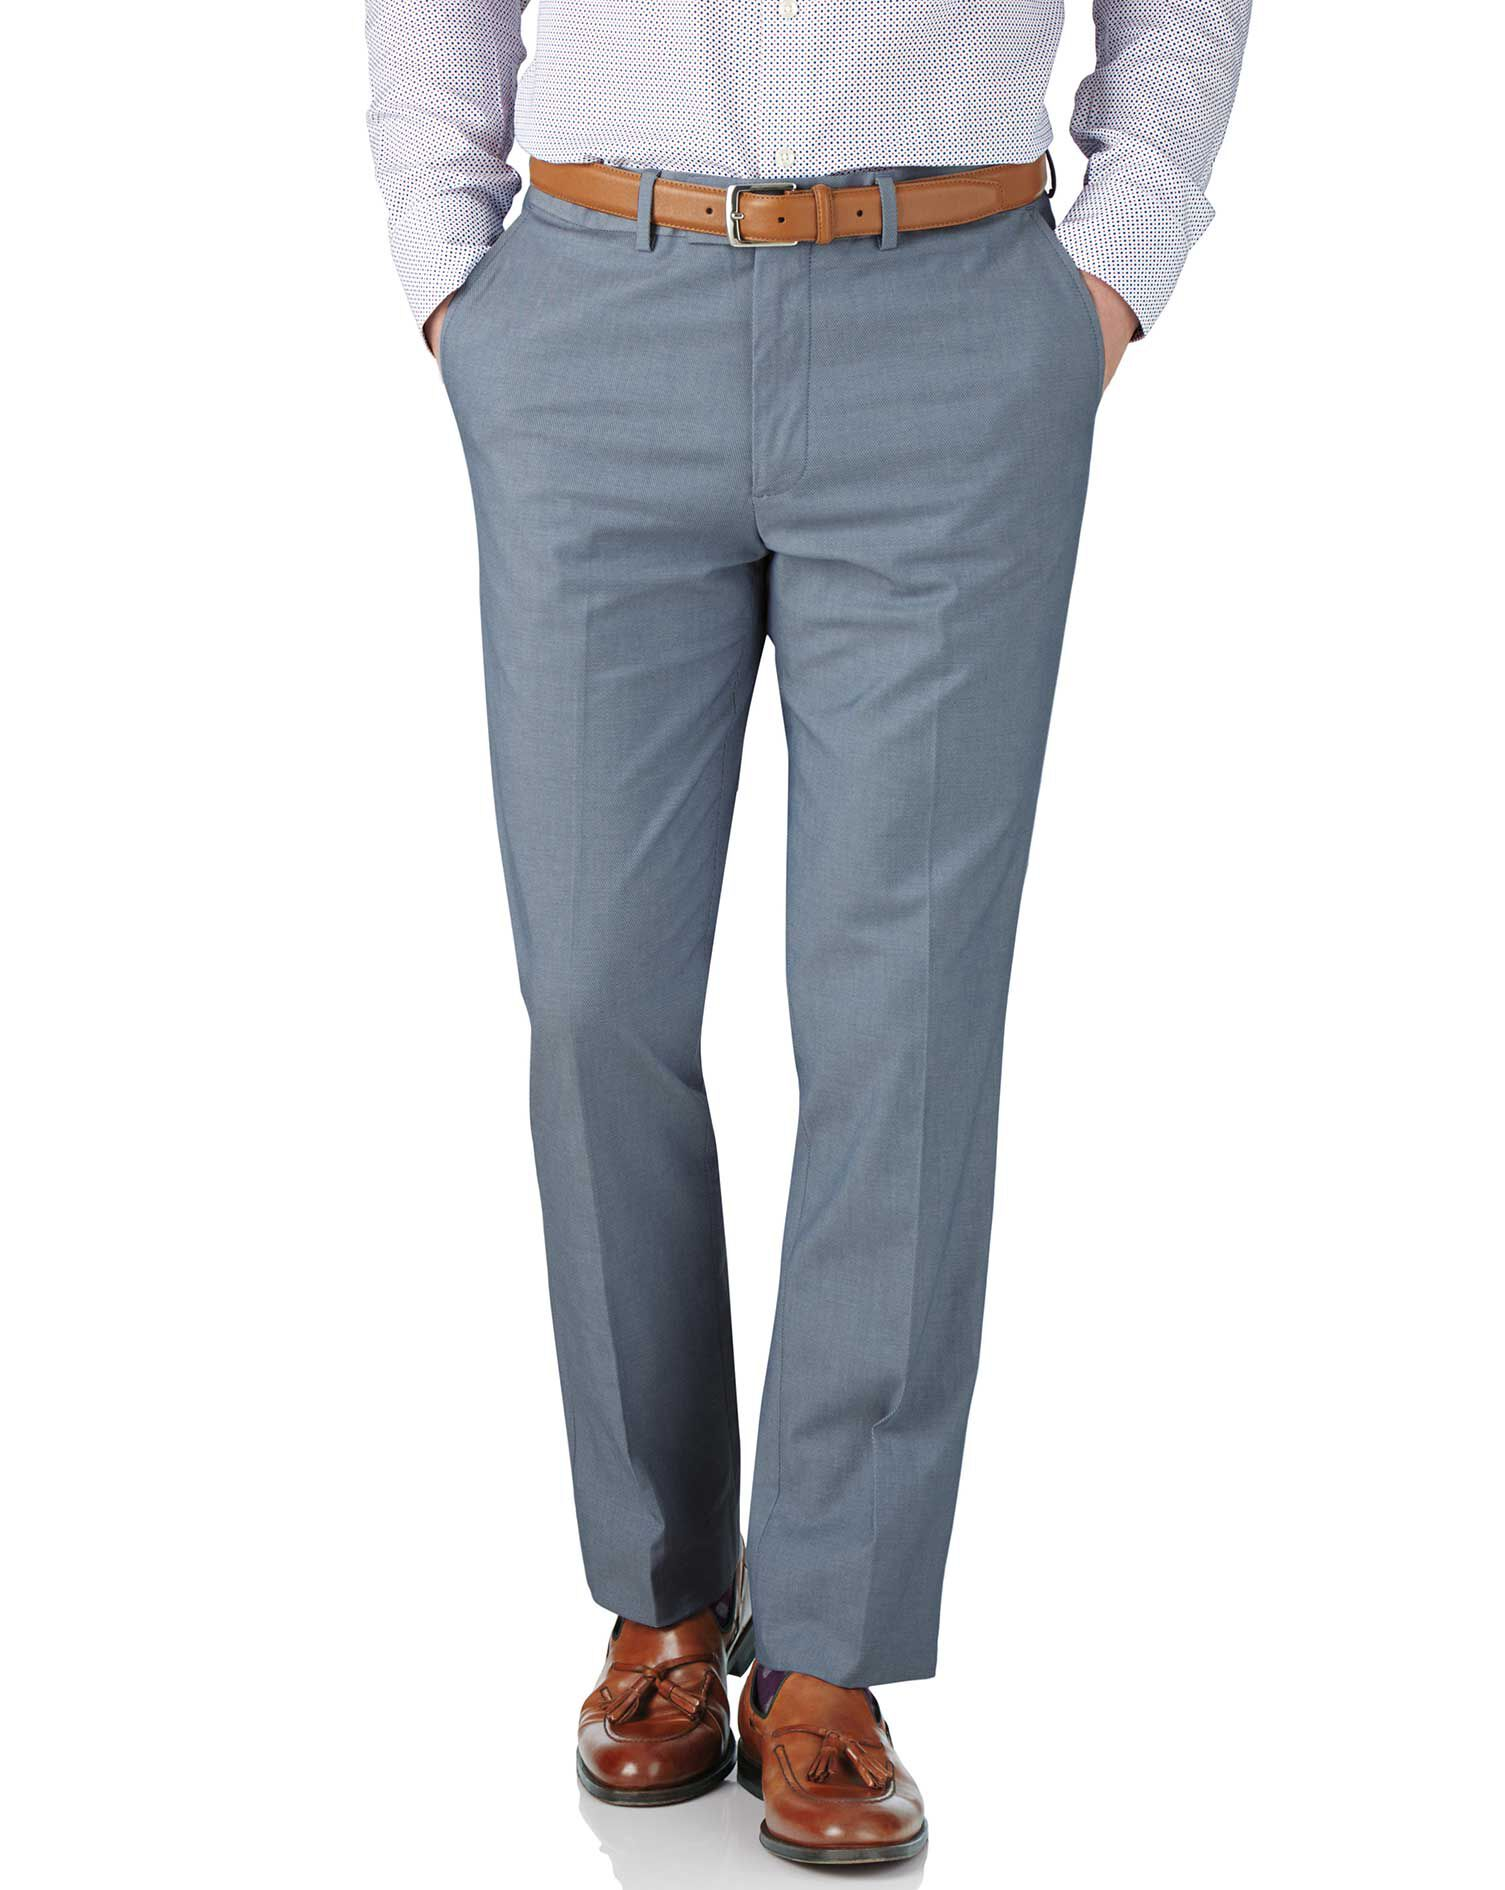 Blue Chambray Slim Fit Stretch Cavalry Twill Trousers Size W42 L32 by Charles Tyrwhitt